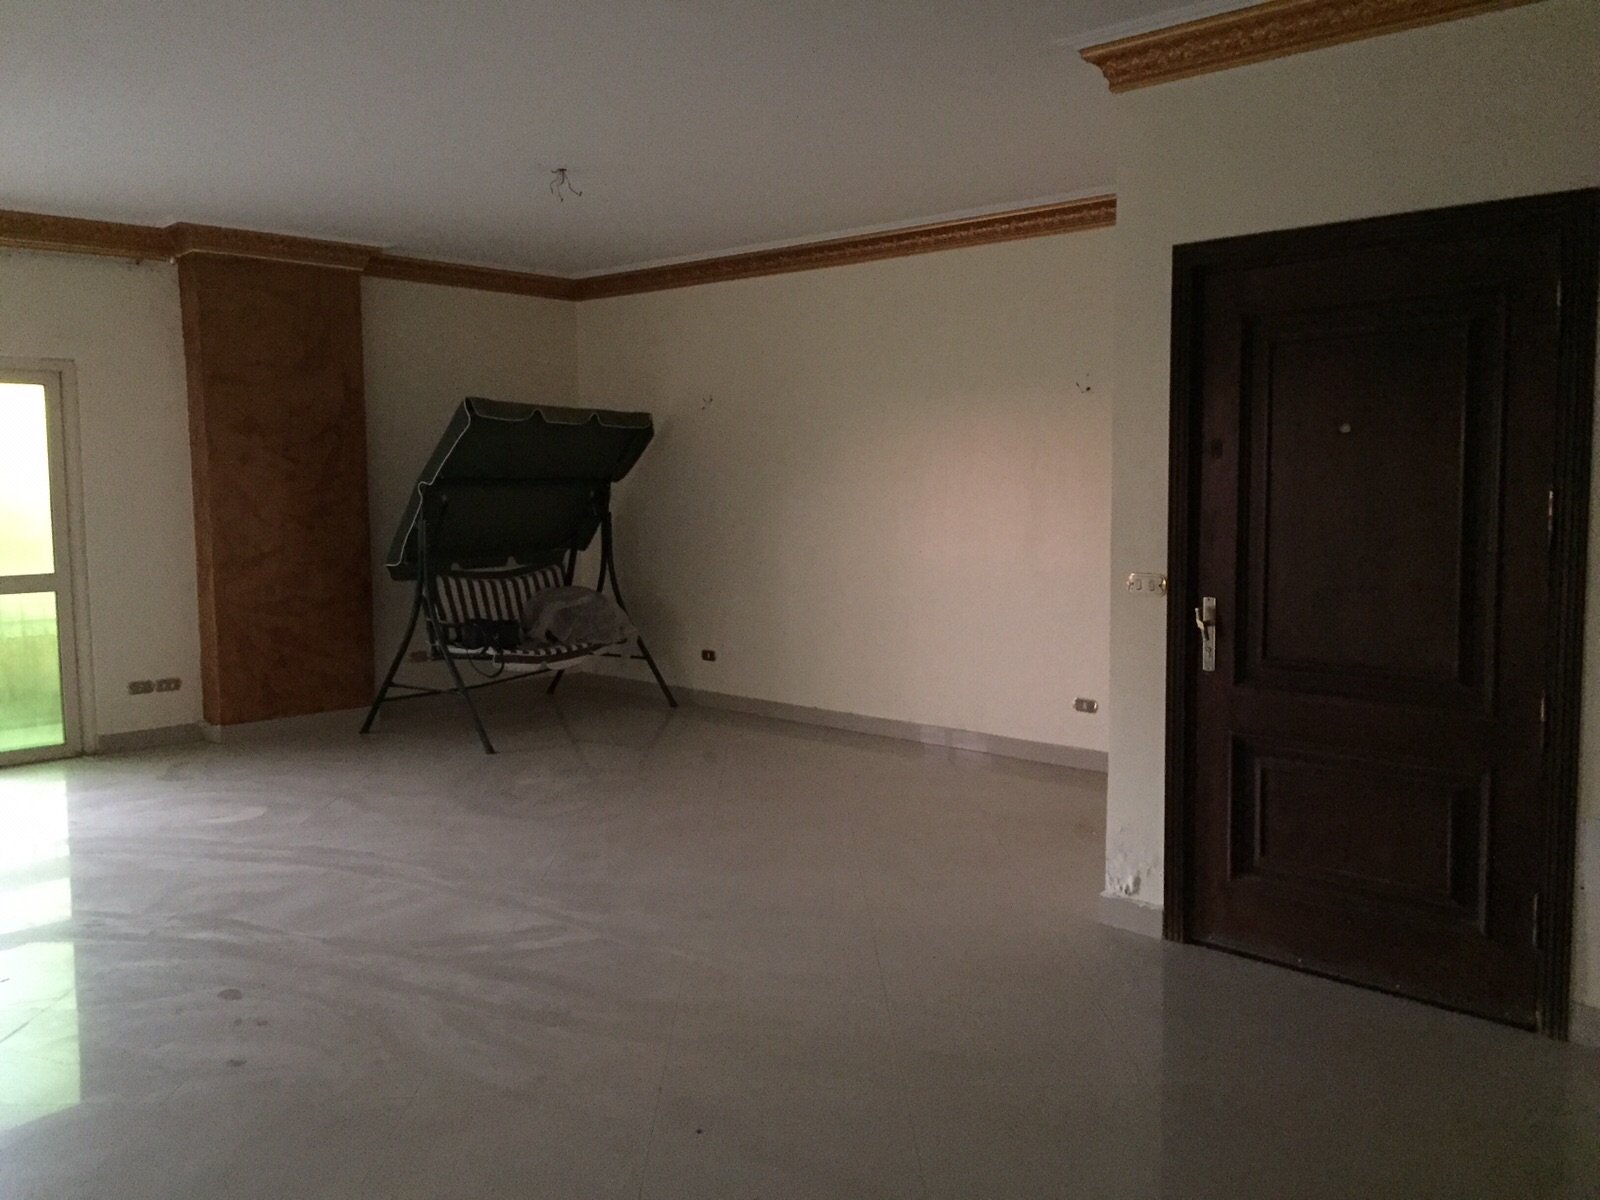 For Sale Duplex with Roof Super Lux Villas Jasmine1 New Cairo